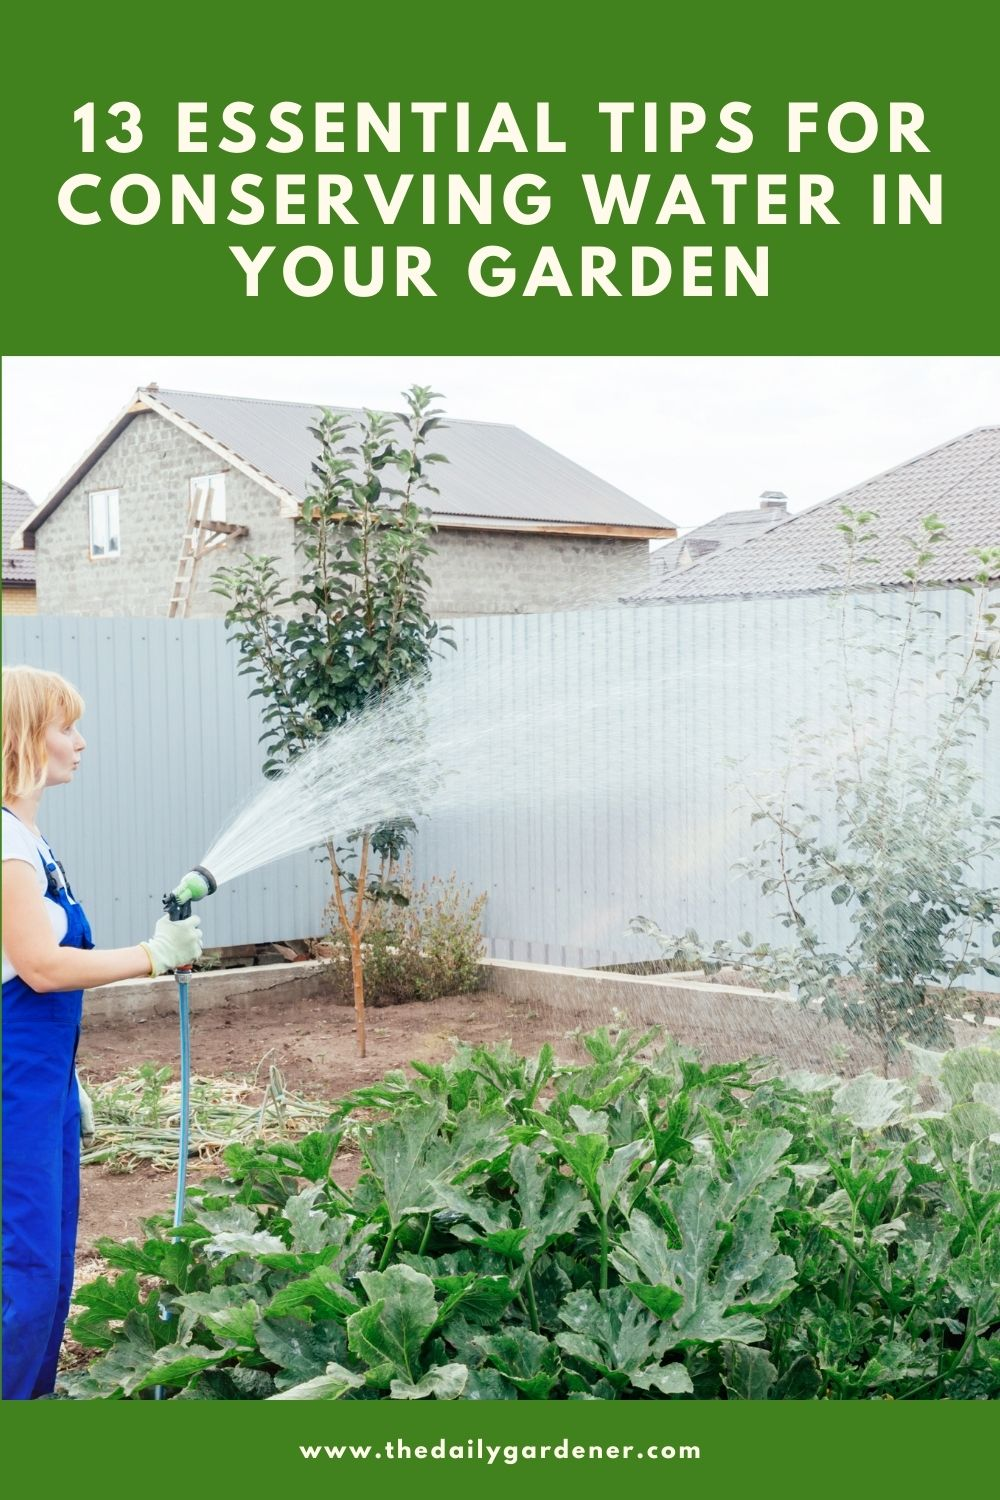 13 Essential Tips for Conserving Water In Your Garden 1